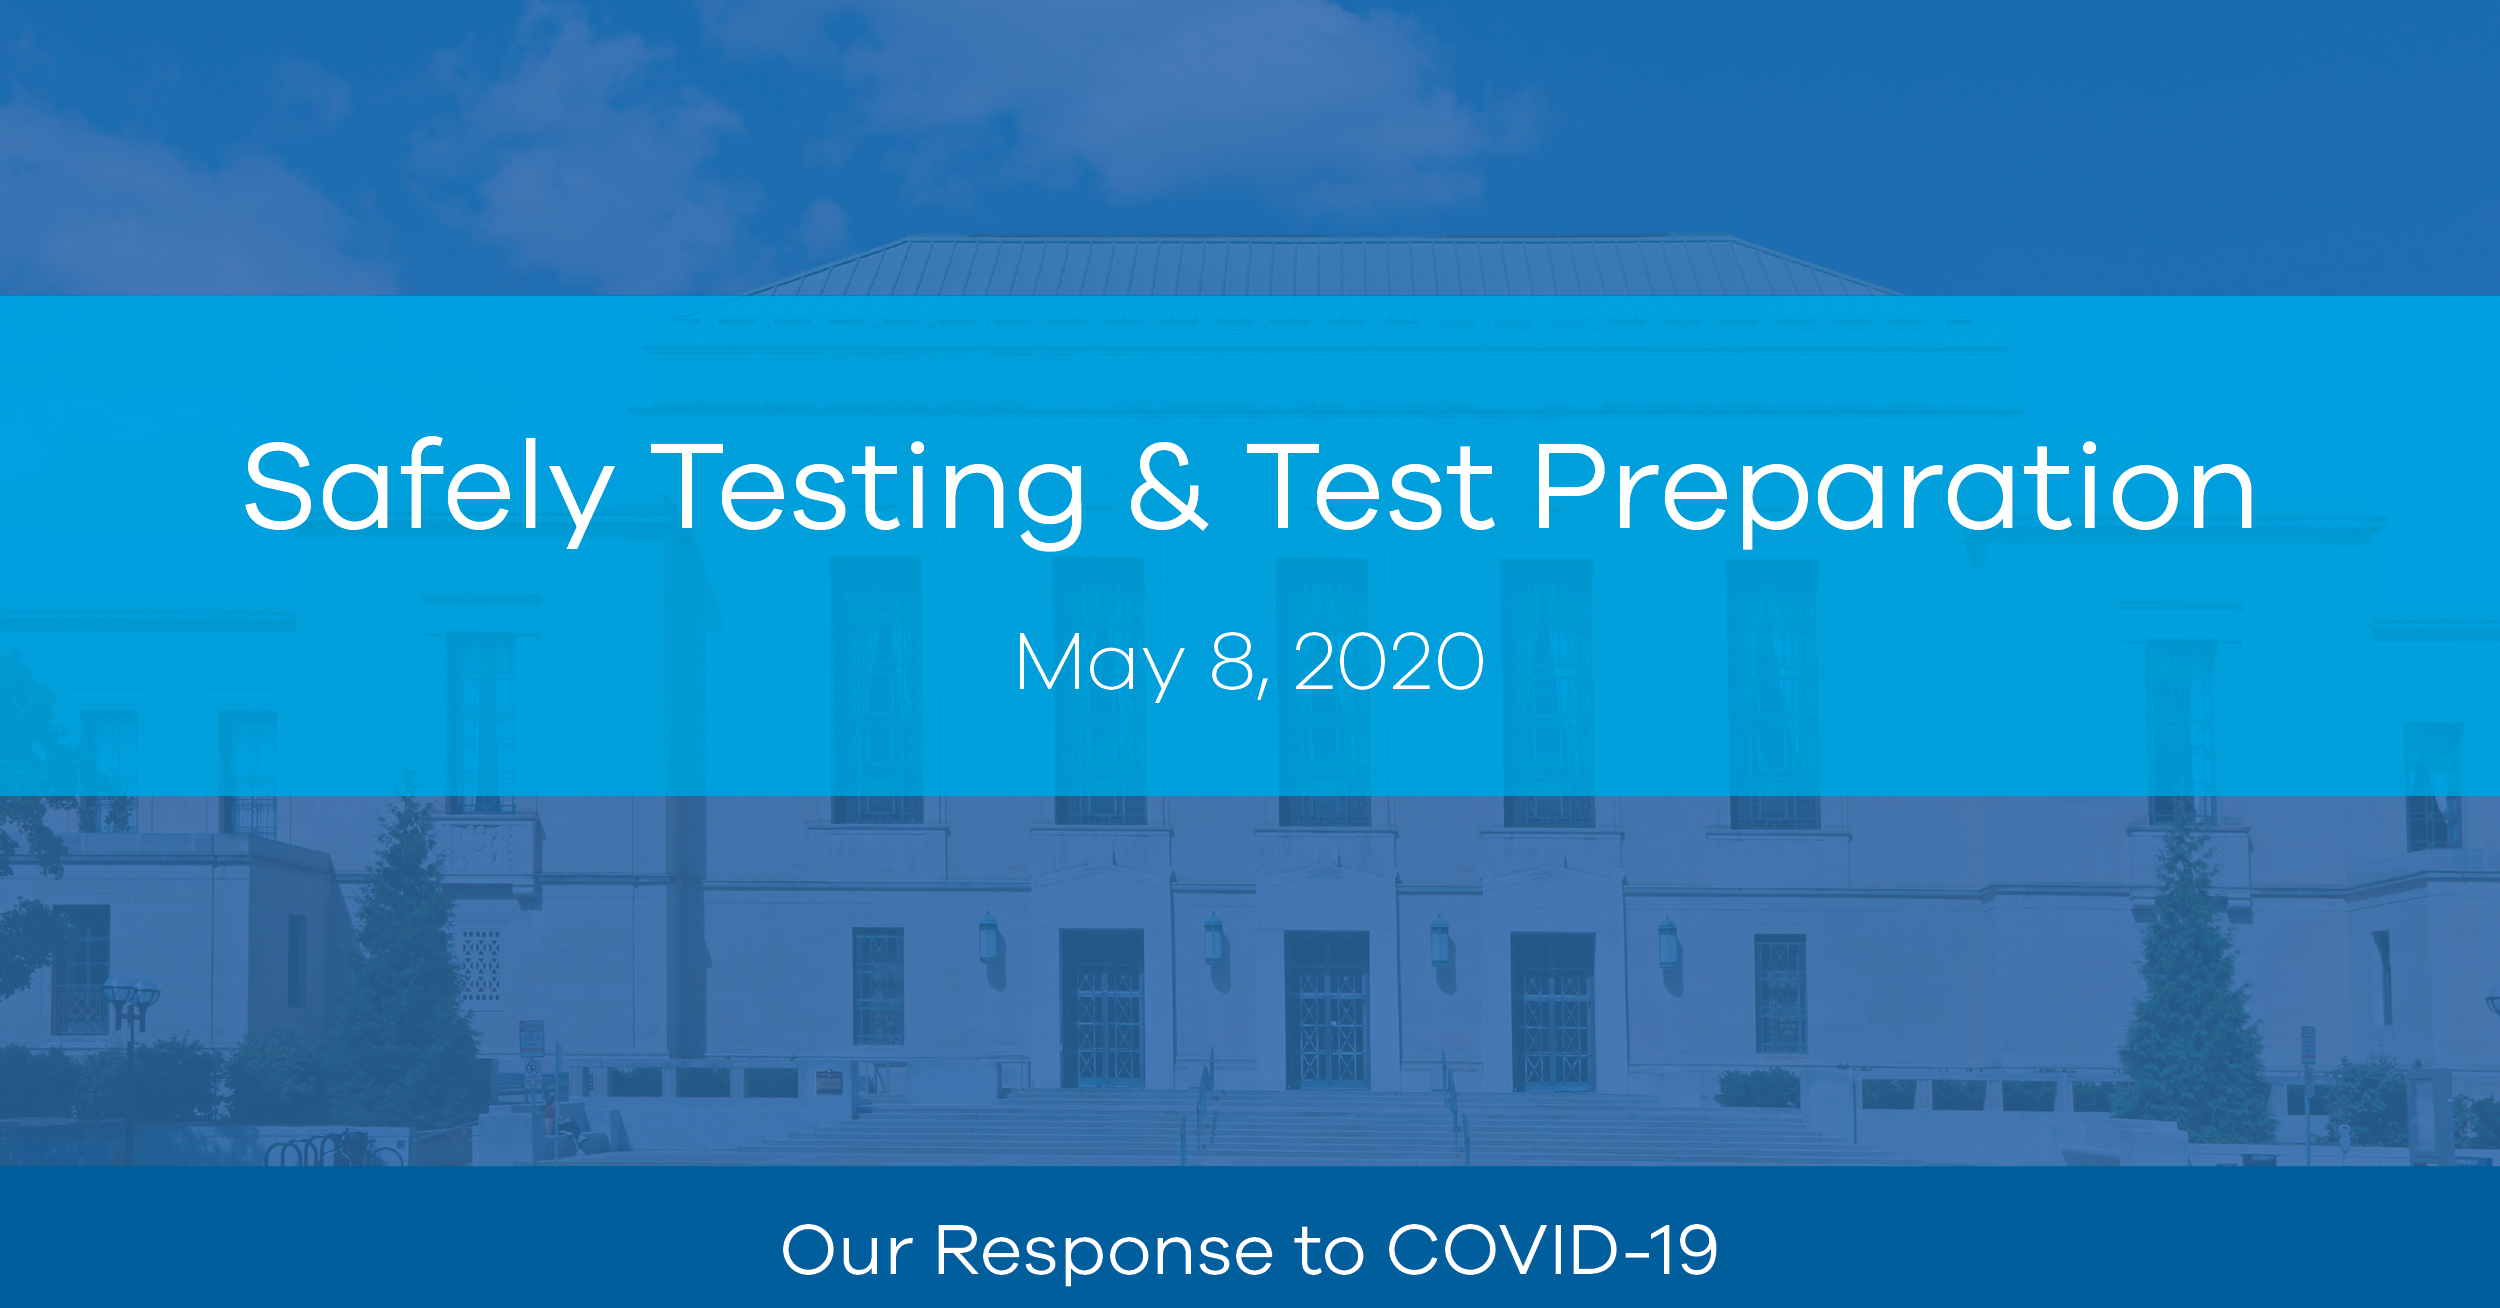 Safely Testing & Test Preparation During COVID-19